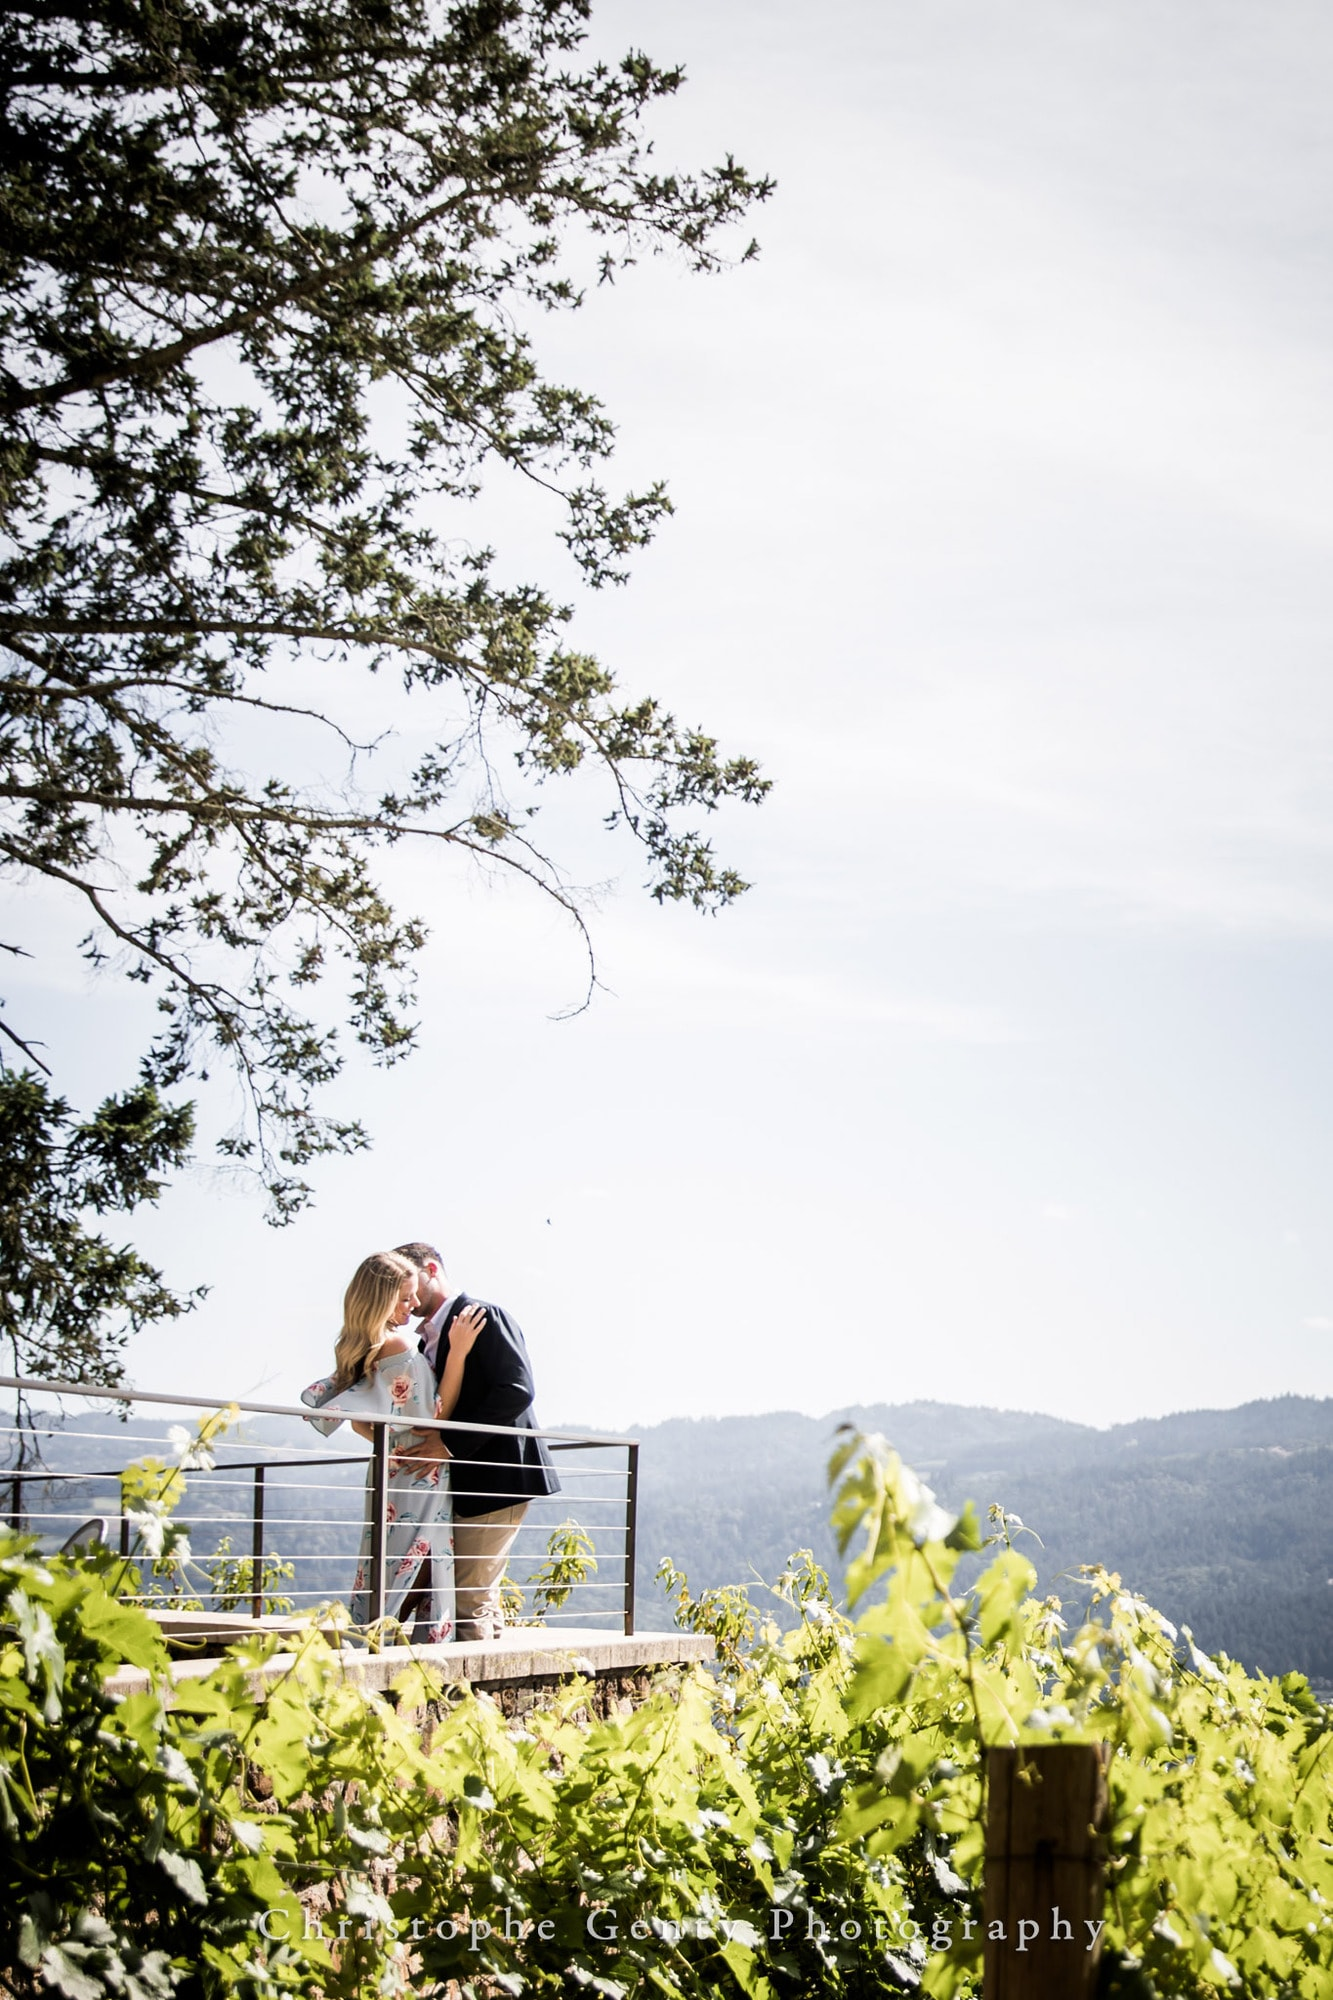 Marriage Proposal Photography in Napa -1039